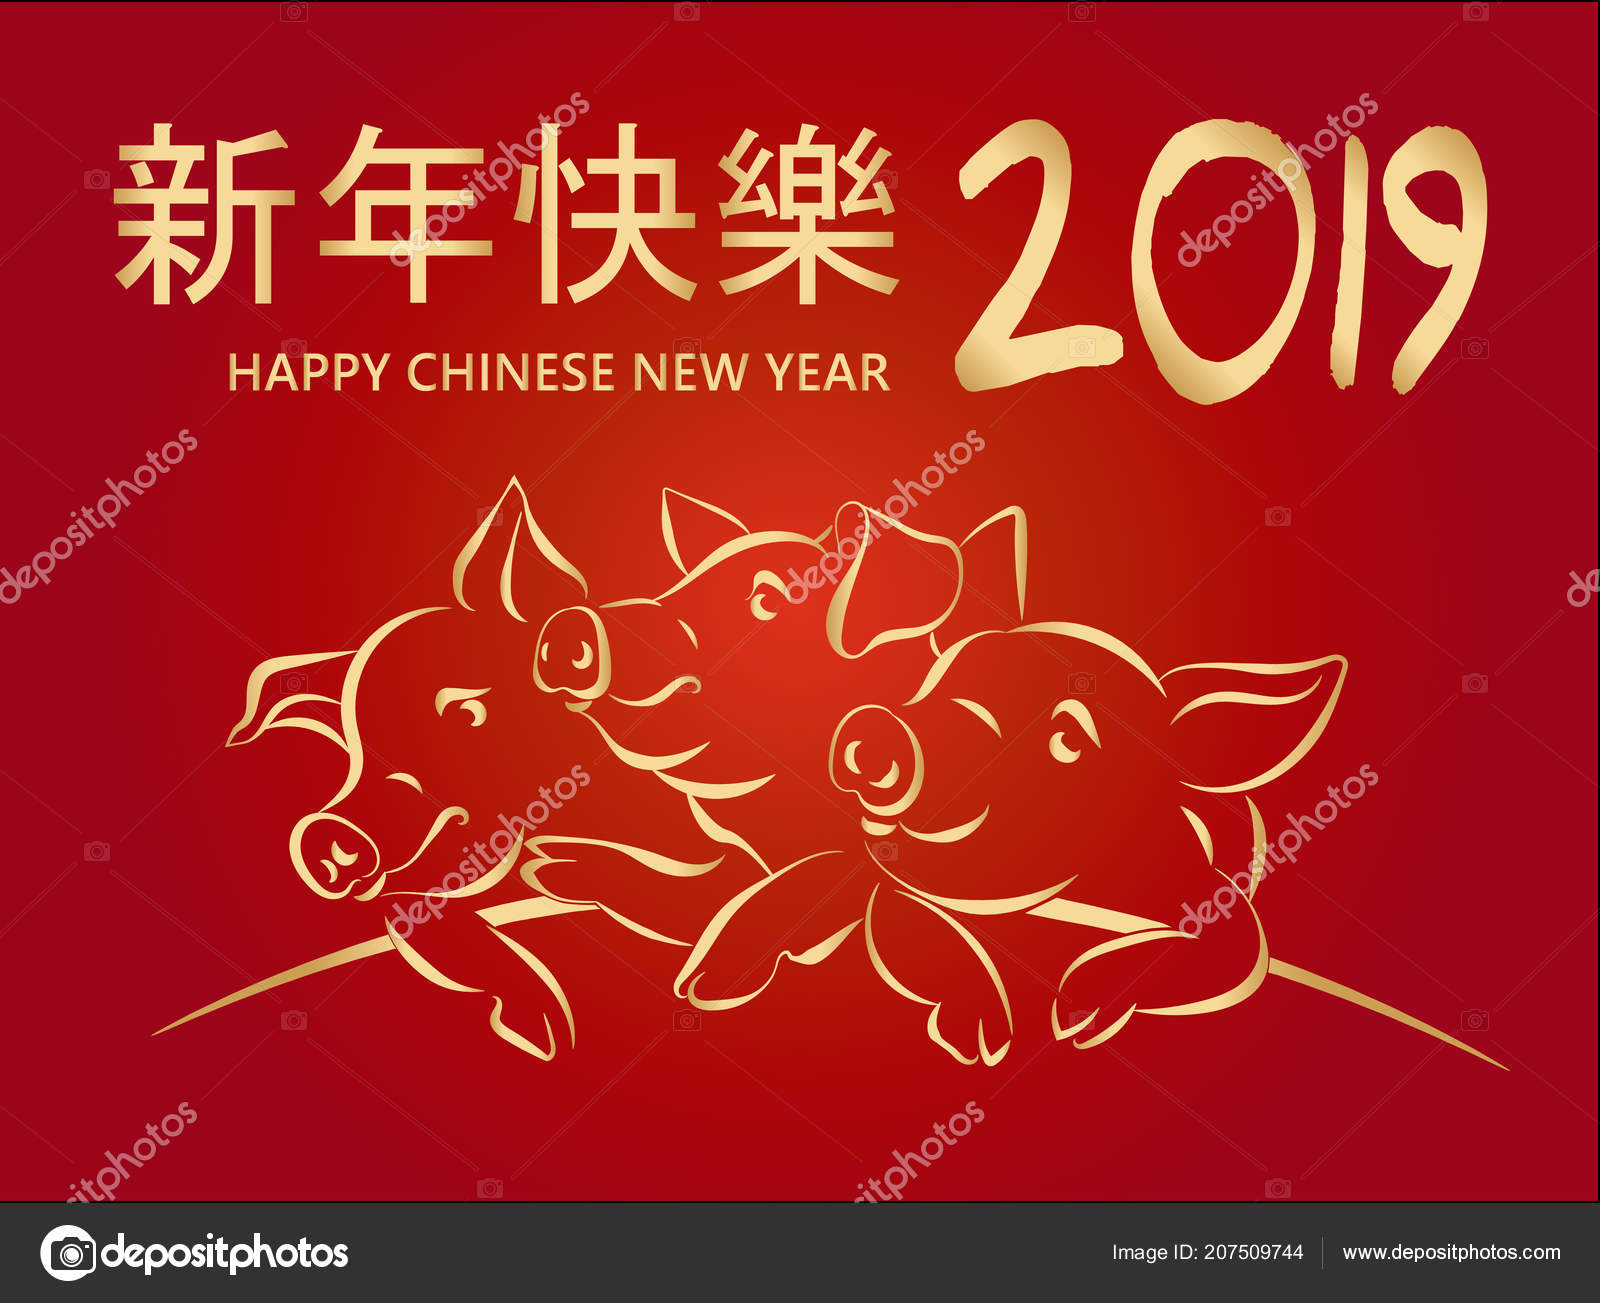 2019 happy chinese new year hieroglyphs three gold pigs on red gradient background greeting card banner poster flyer or invitation